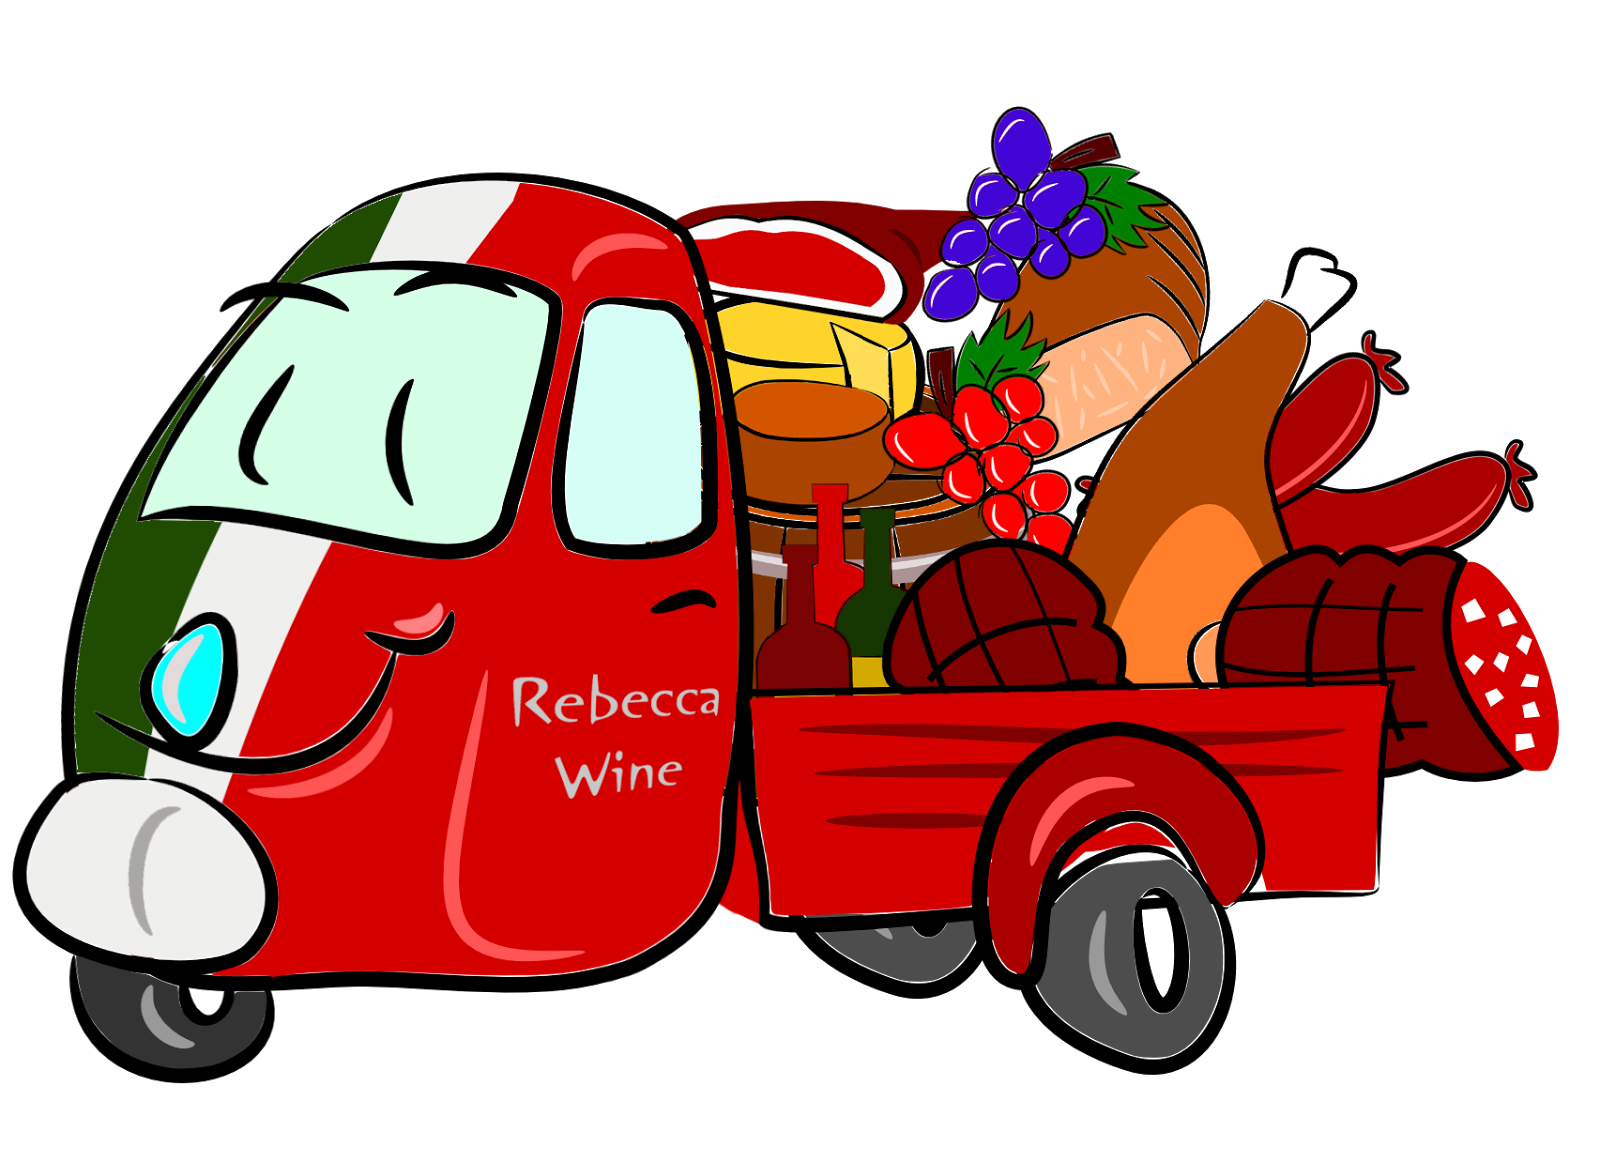 Packed car clipart banner freeuse library Rebecca Wine - touring wine country and more...: 2011 banner freeuse library